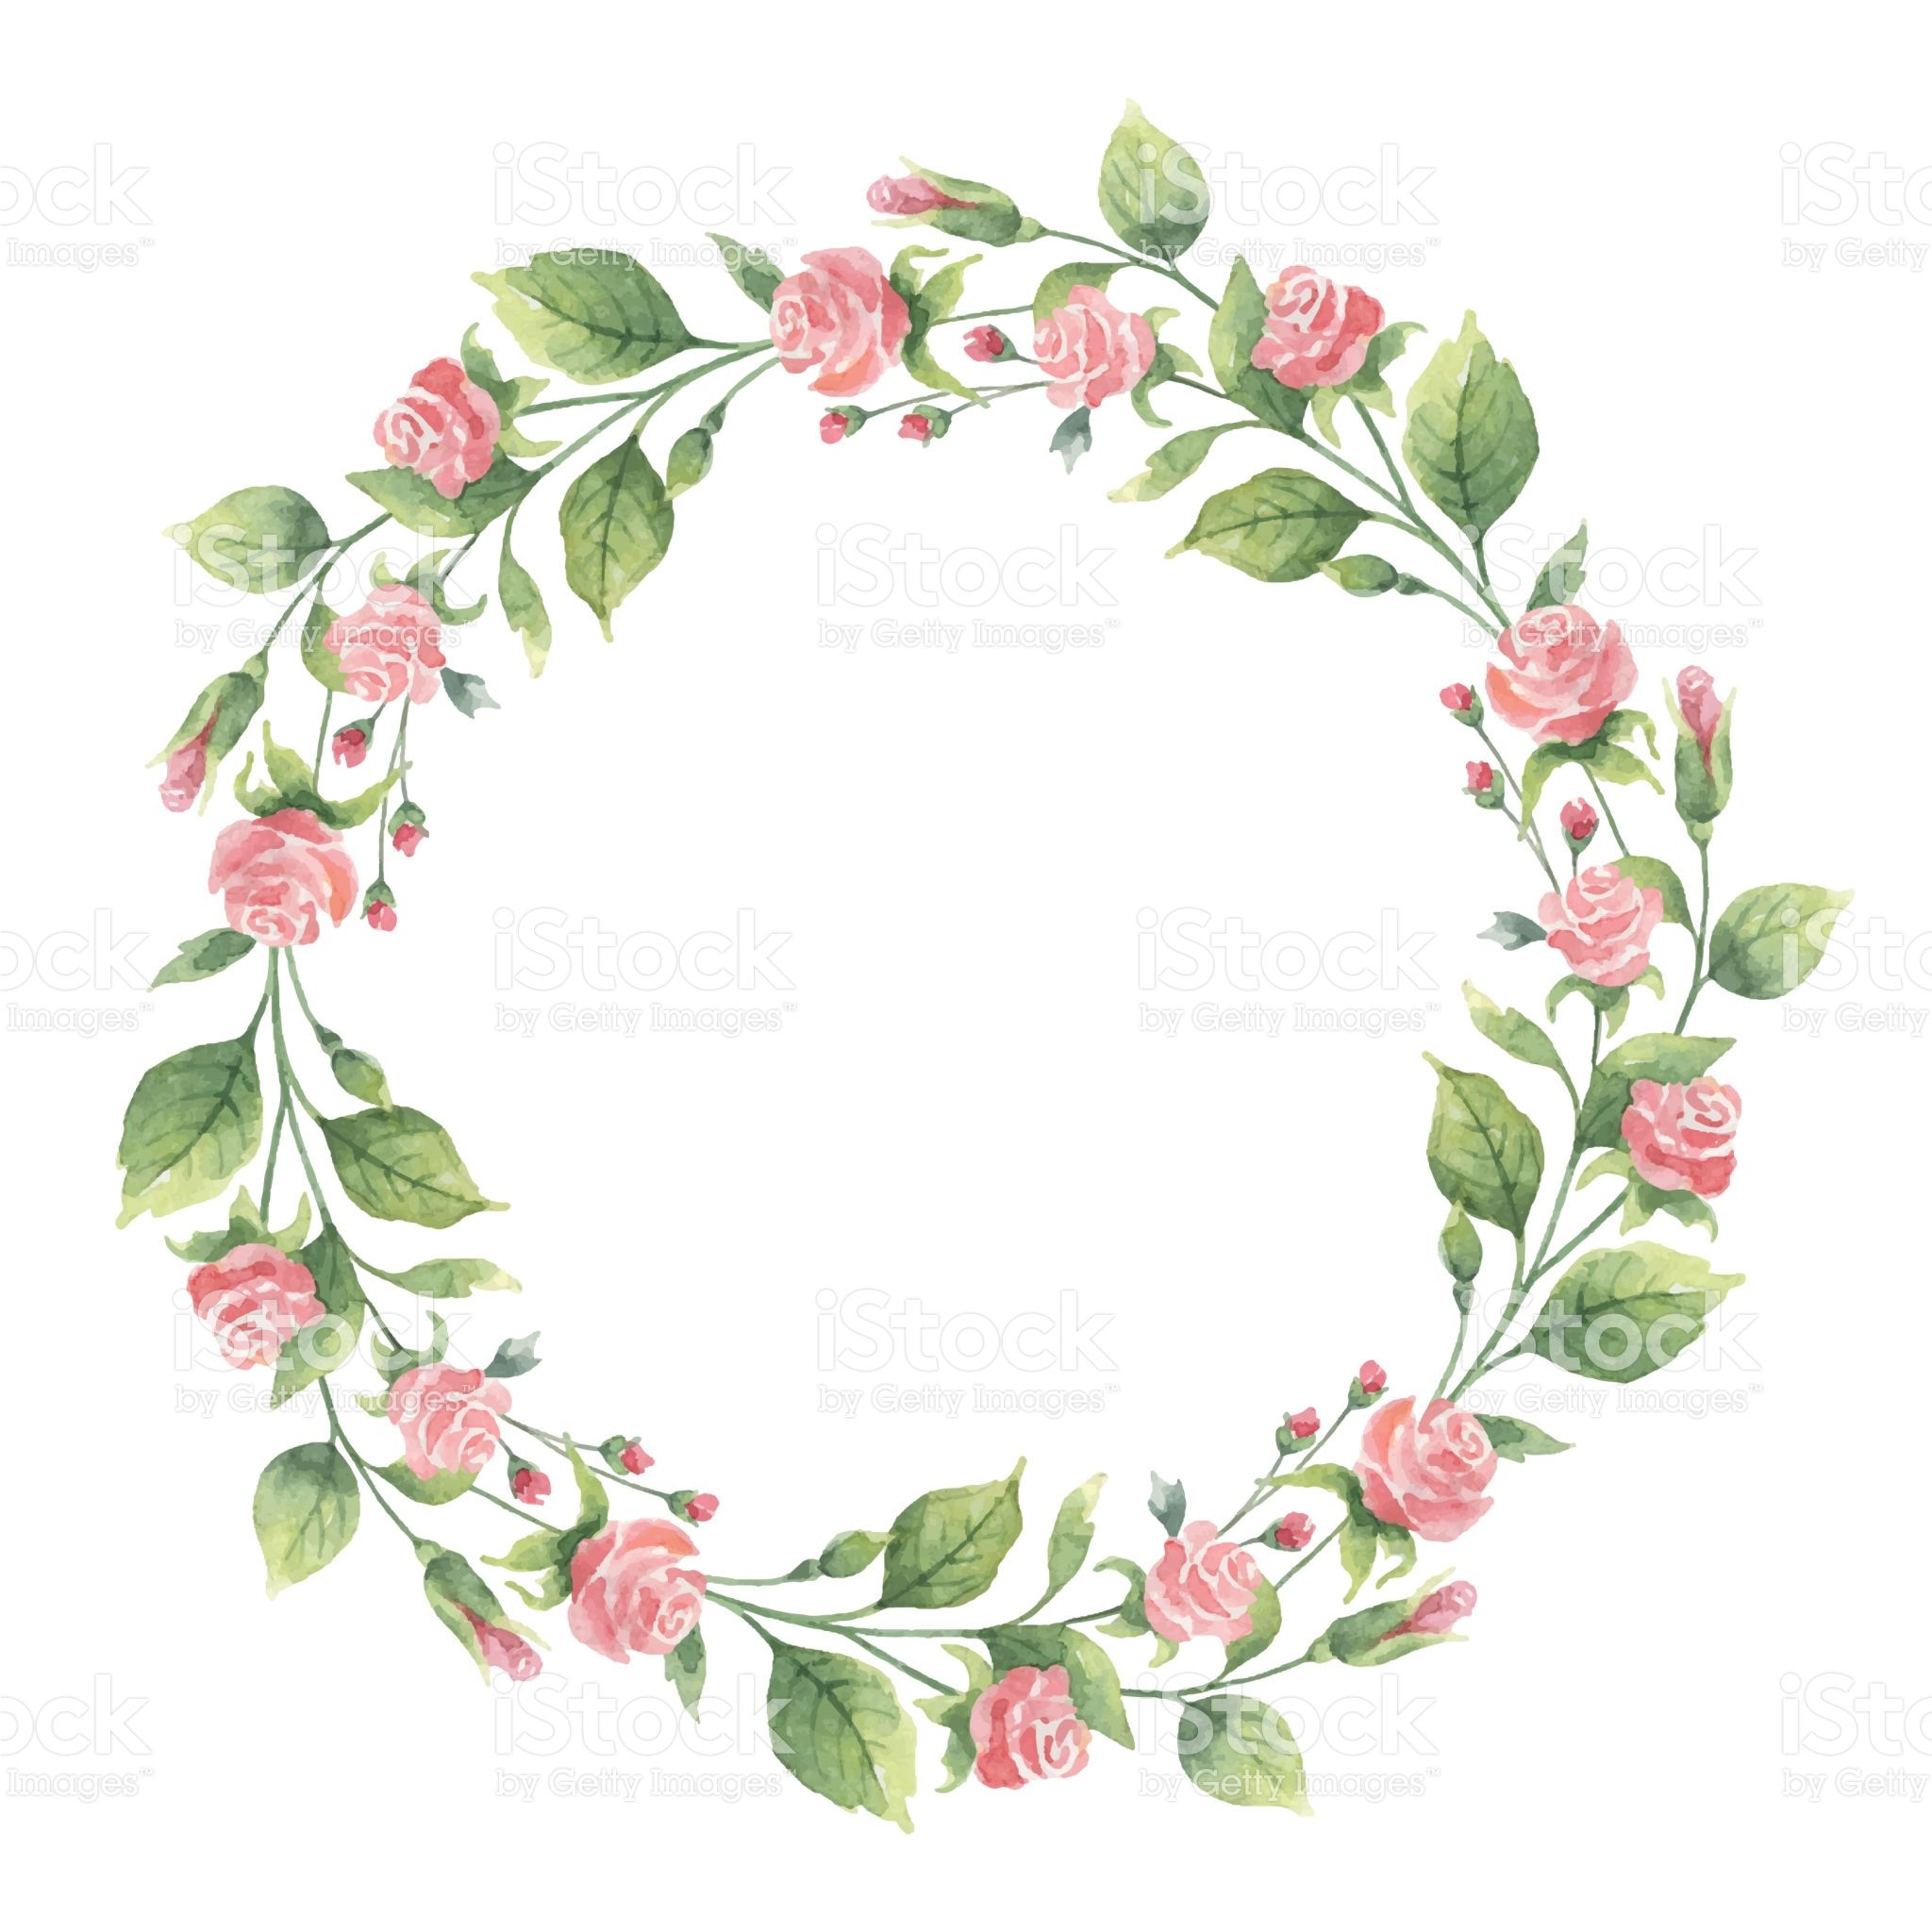 Watercolor Hand Painted Vector Wreath Of Green Branches And